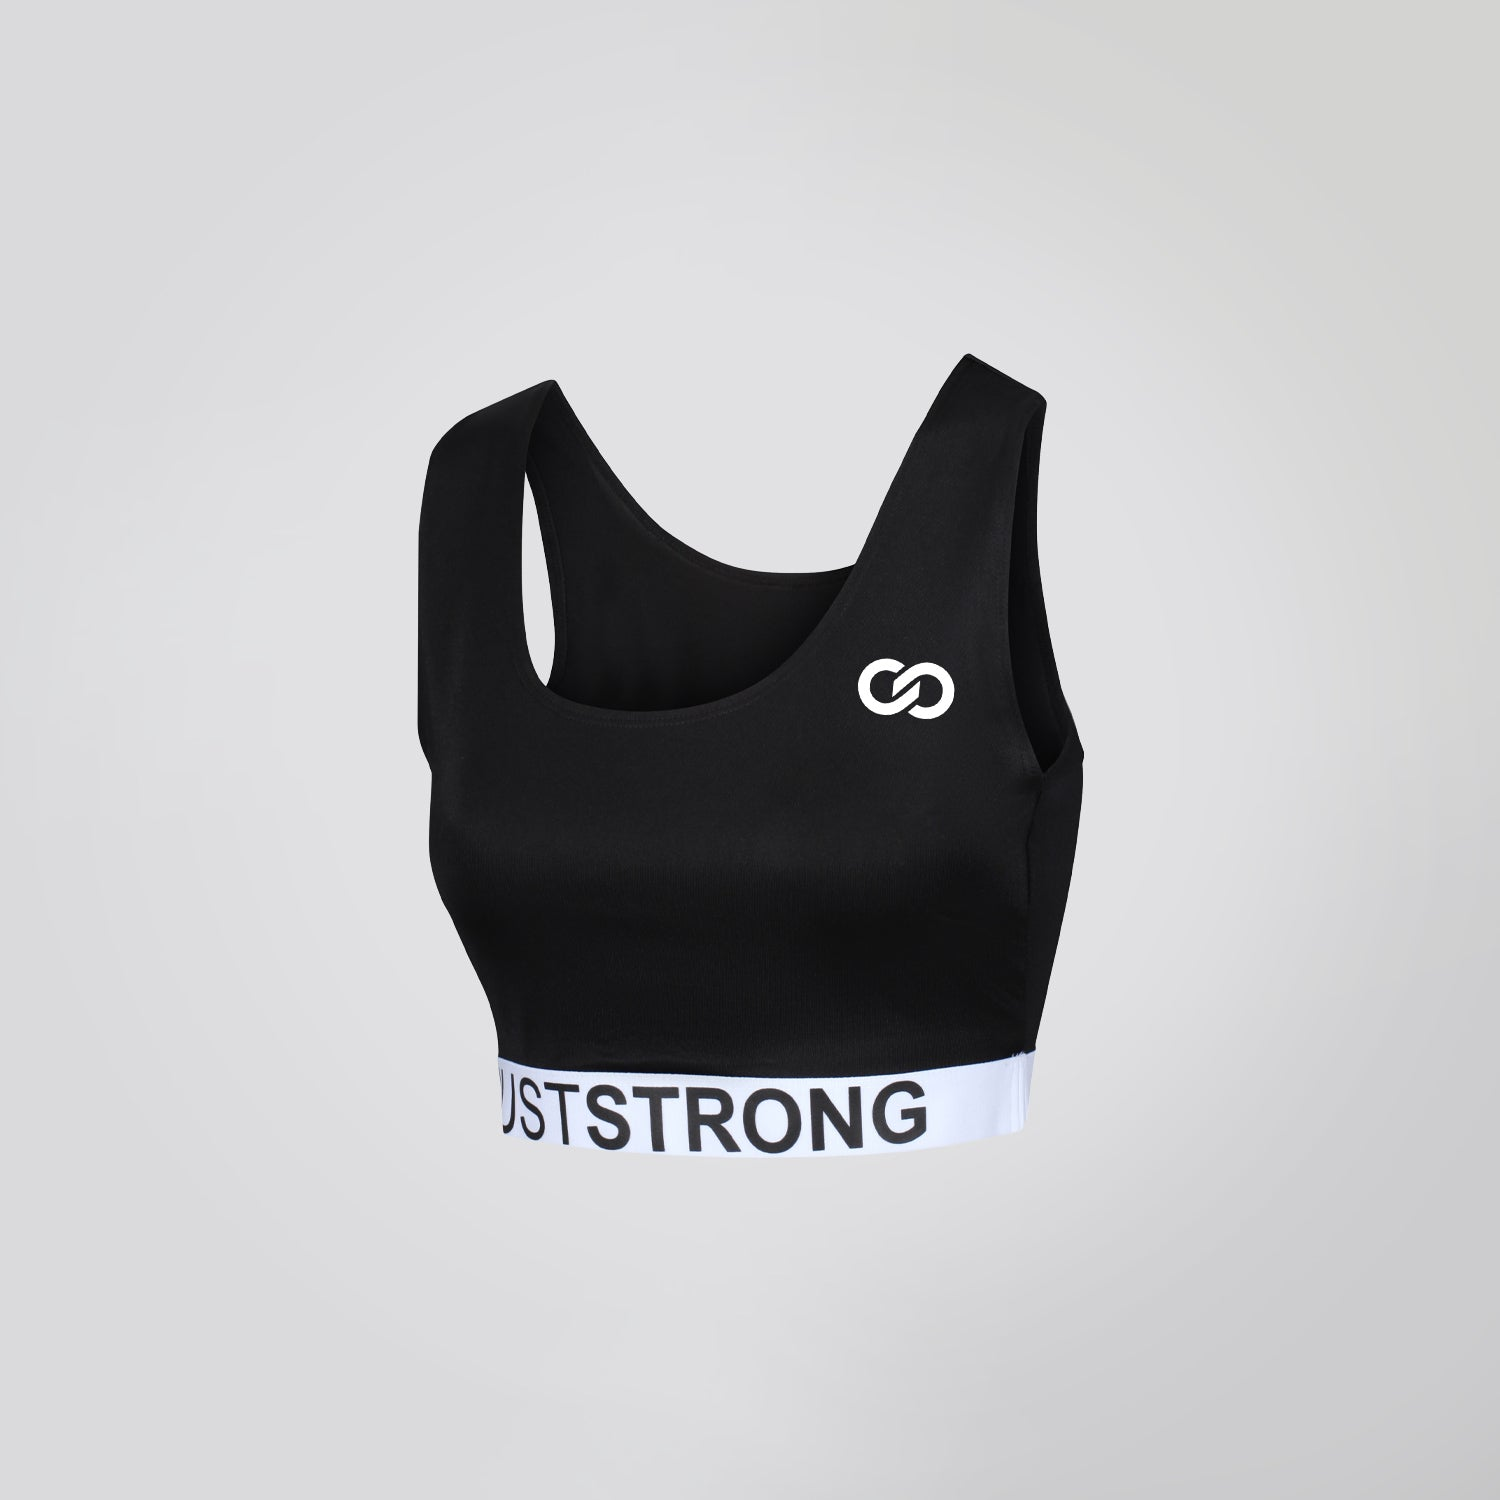 JUST STRONG SPORTS BRA